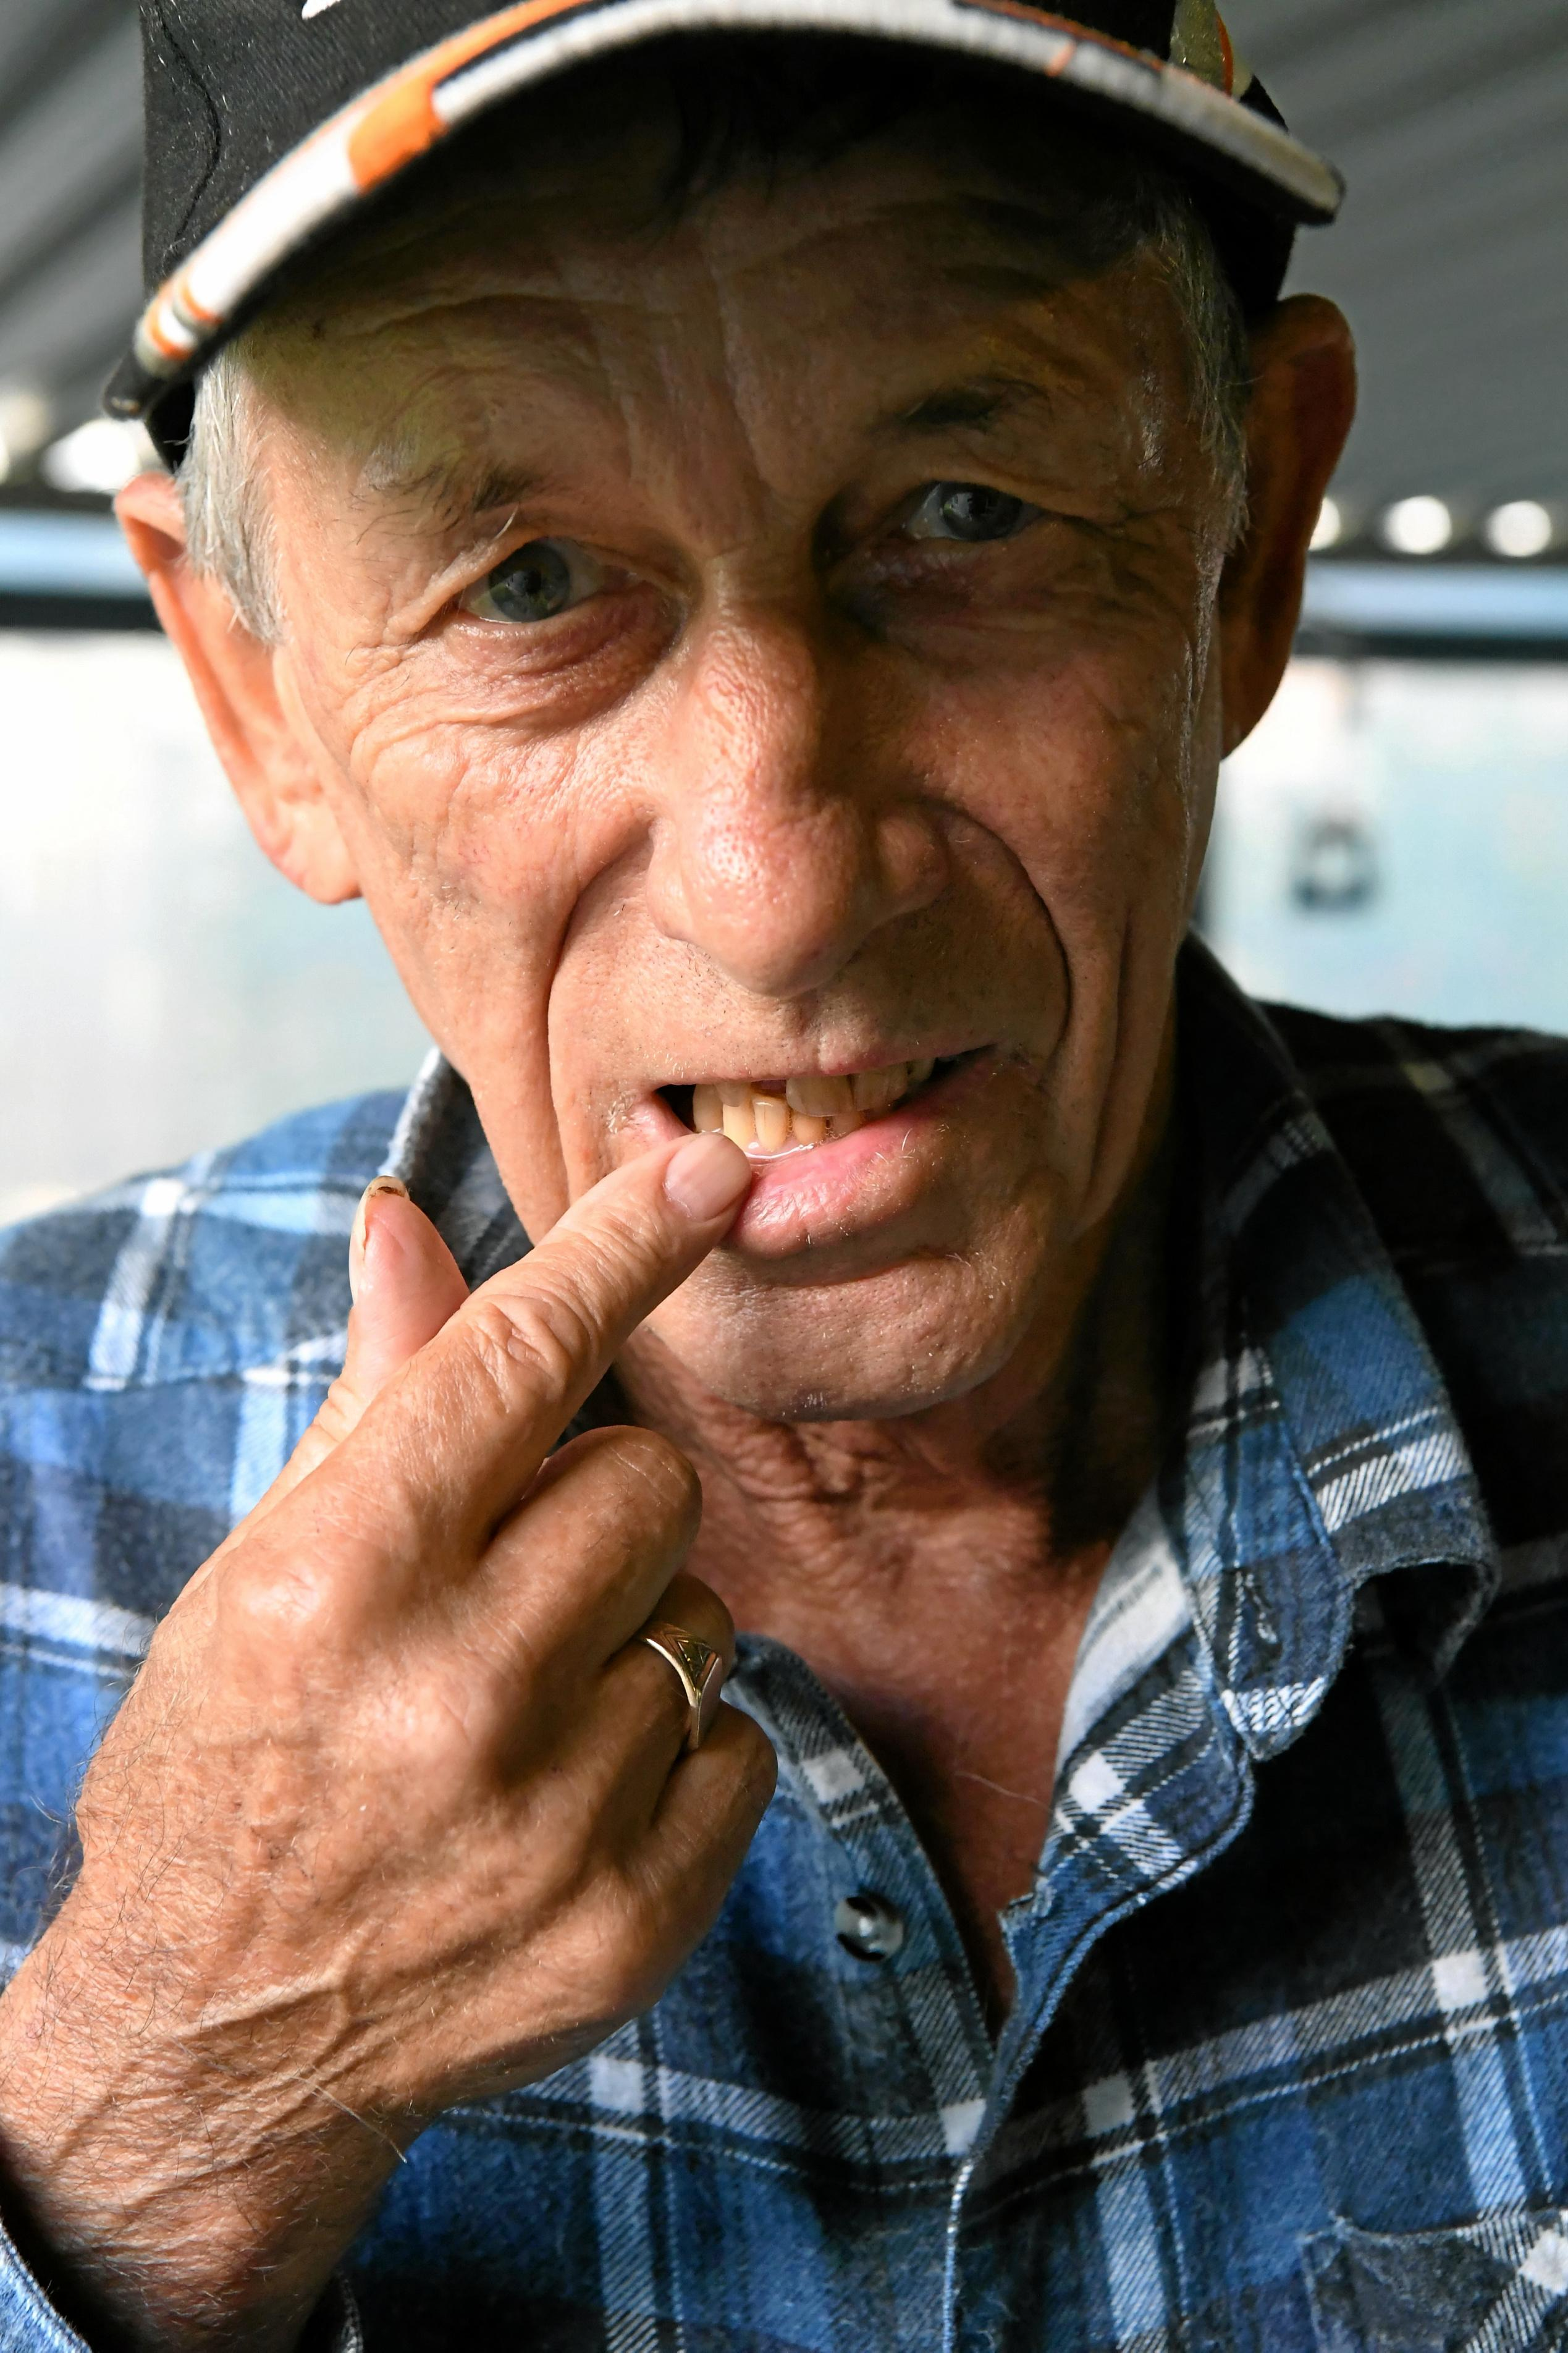 Larry Clyde has been waiting for twenty-six months to see a dentist.